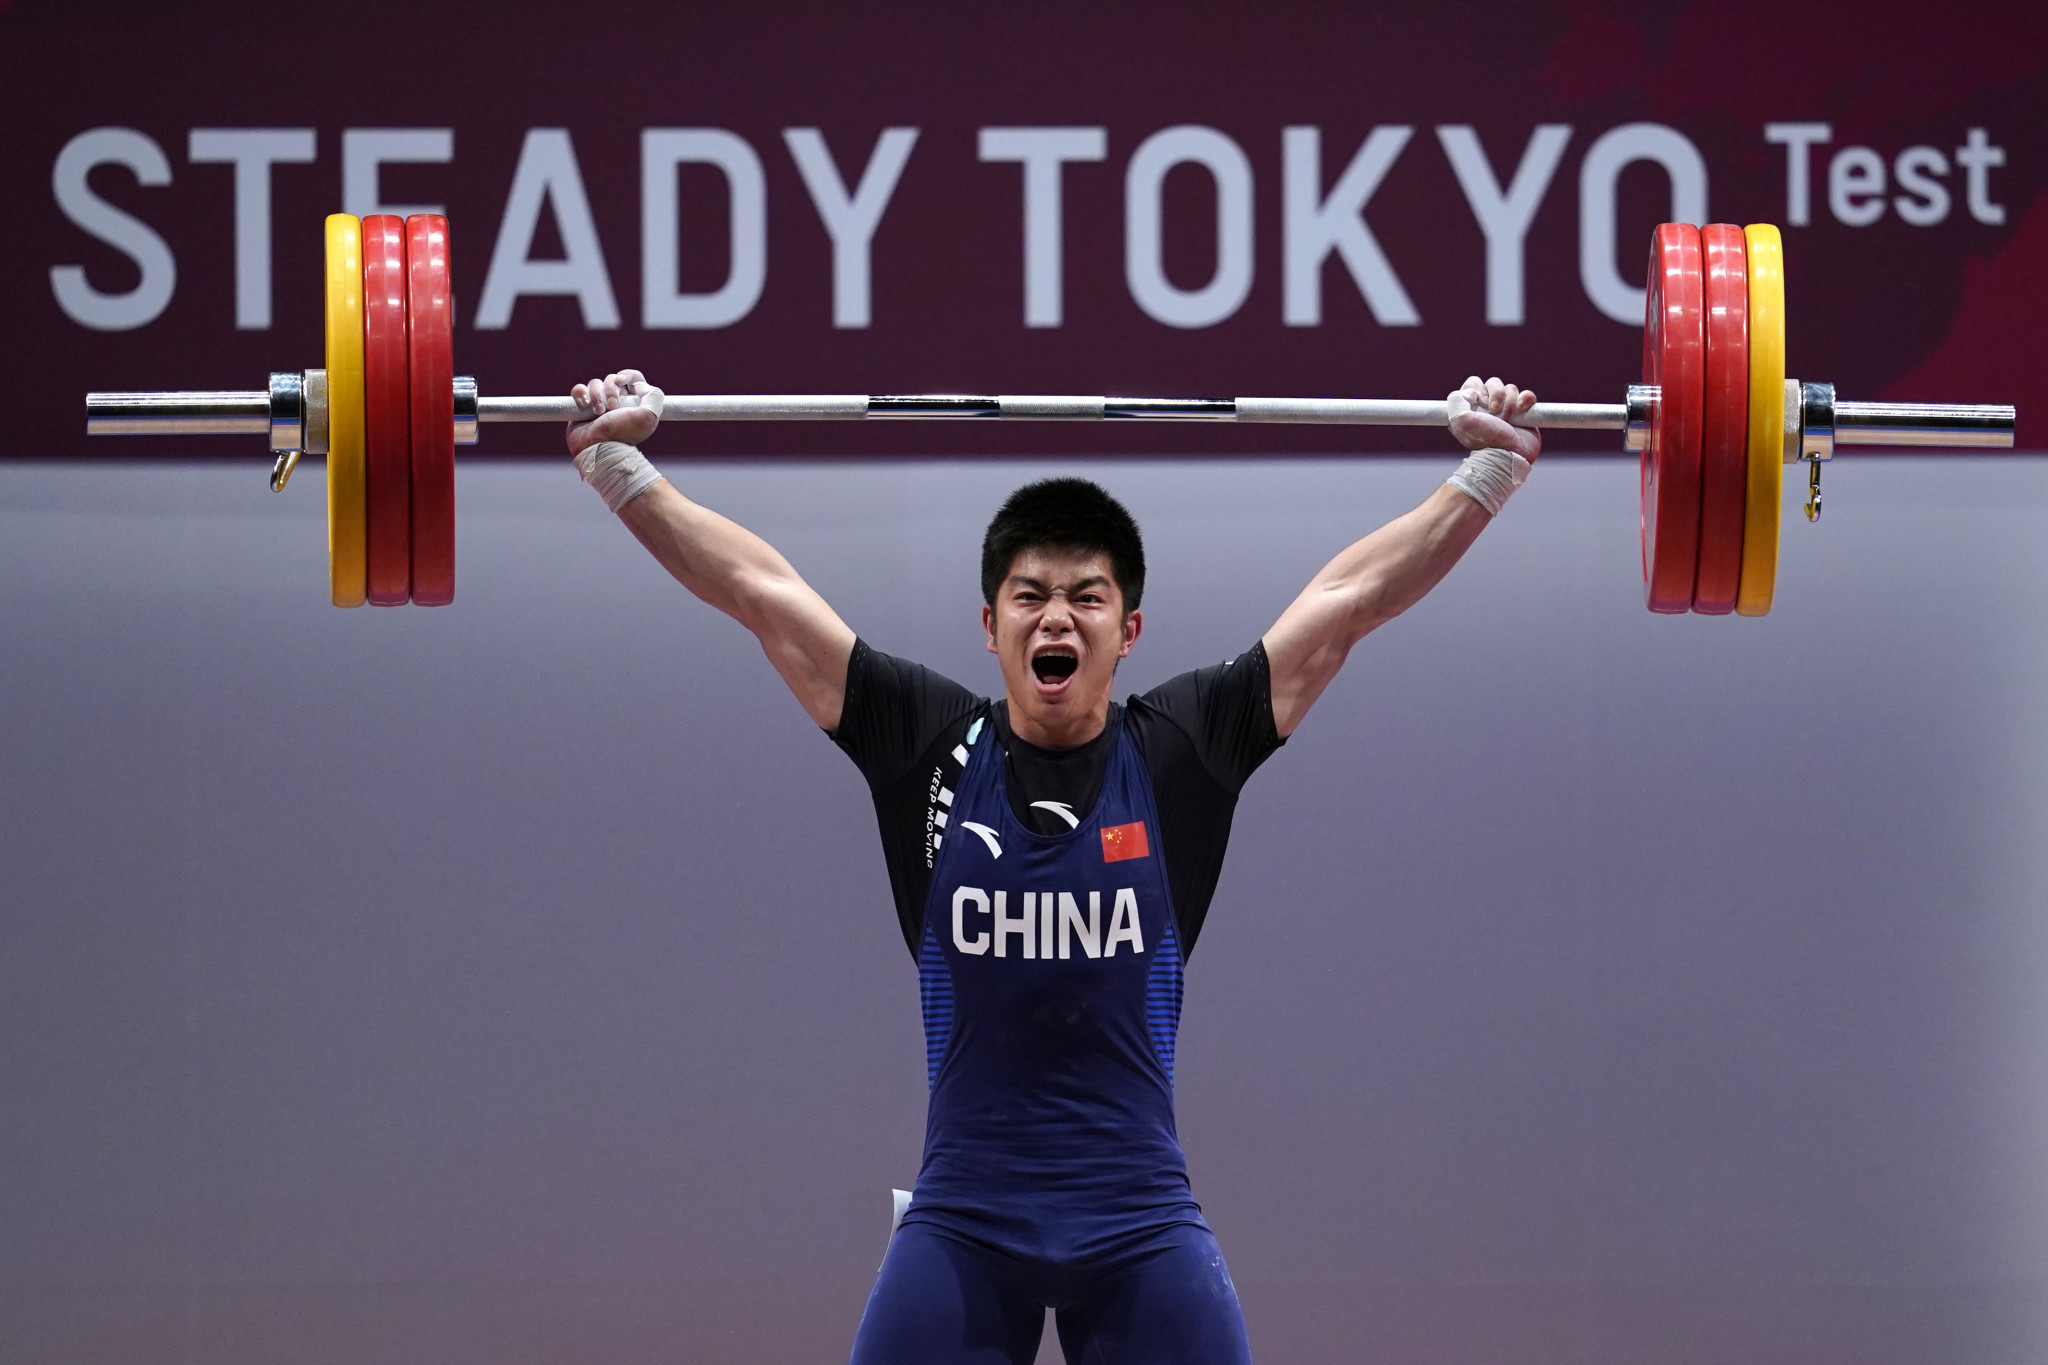 IWF tells IOC it does not need advance payment of Tokyo 2020 money and announces extra funds for national bodies